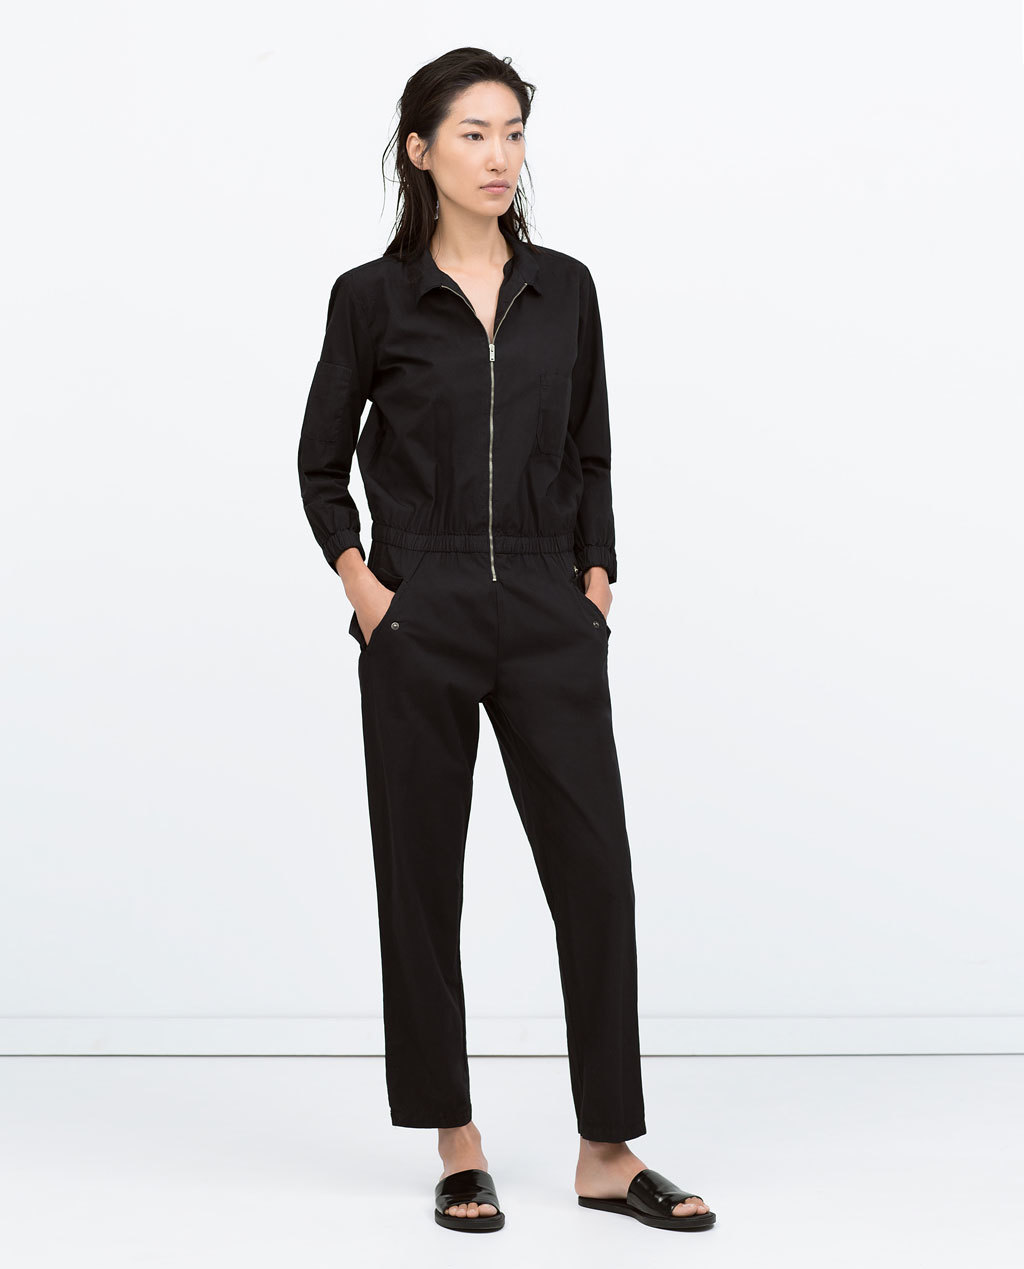 Zipped Poplin Jumpsuit - length: standard; neckline: v-neck; pattern: plain; predominant colour: black; occasions: casual, evening; fit: body skimming; fibres: cotton - 100%; sleeve length: long sleeve; sleeve style: standard; texture group: cotton feel fabrics; style: jumpsuit; season: s/s 2015